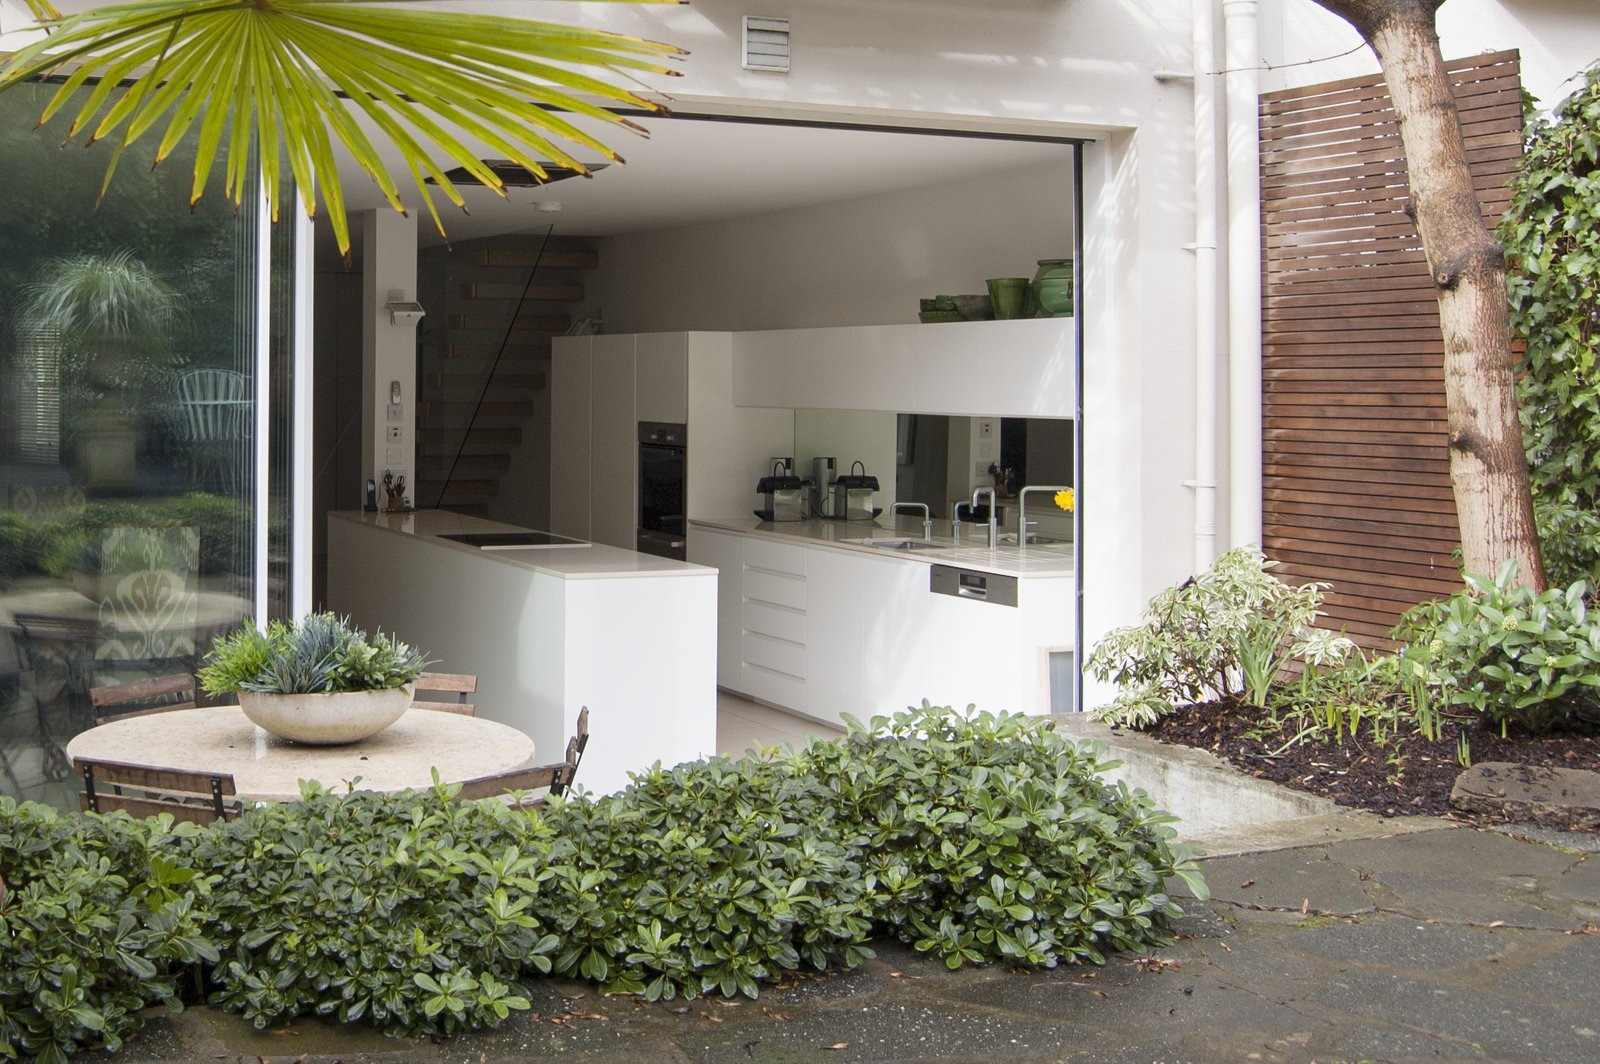 The modern intervention is articulated as a clean cut into the original building fabric, into which a sleeve of modern architecture is inserted. Tagged: Outdoor, Back Yard, Trees, Hardscapes, Raised Planters, Concrete Patio, Porch, Deck, Gardens, and Horizontal Fences, Wall.  Soupçon Brut by WILLIAM TOZER Associates